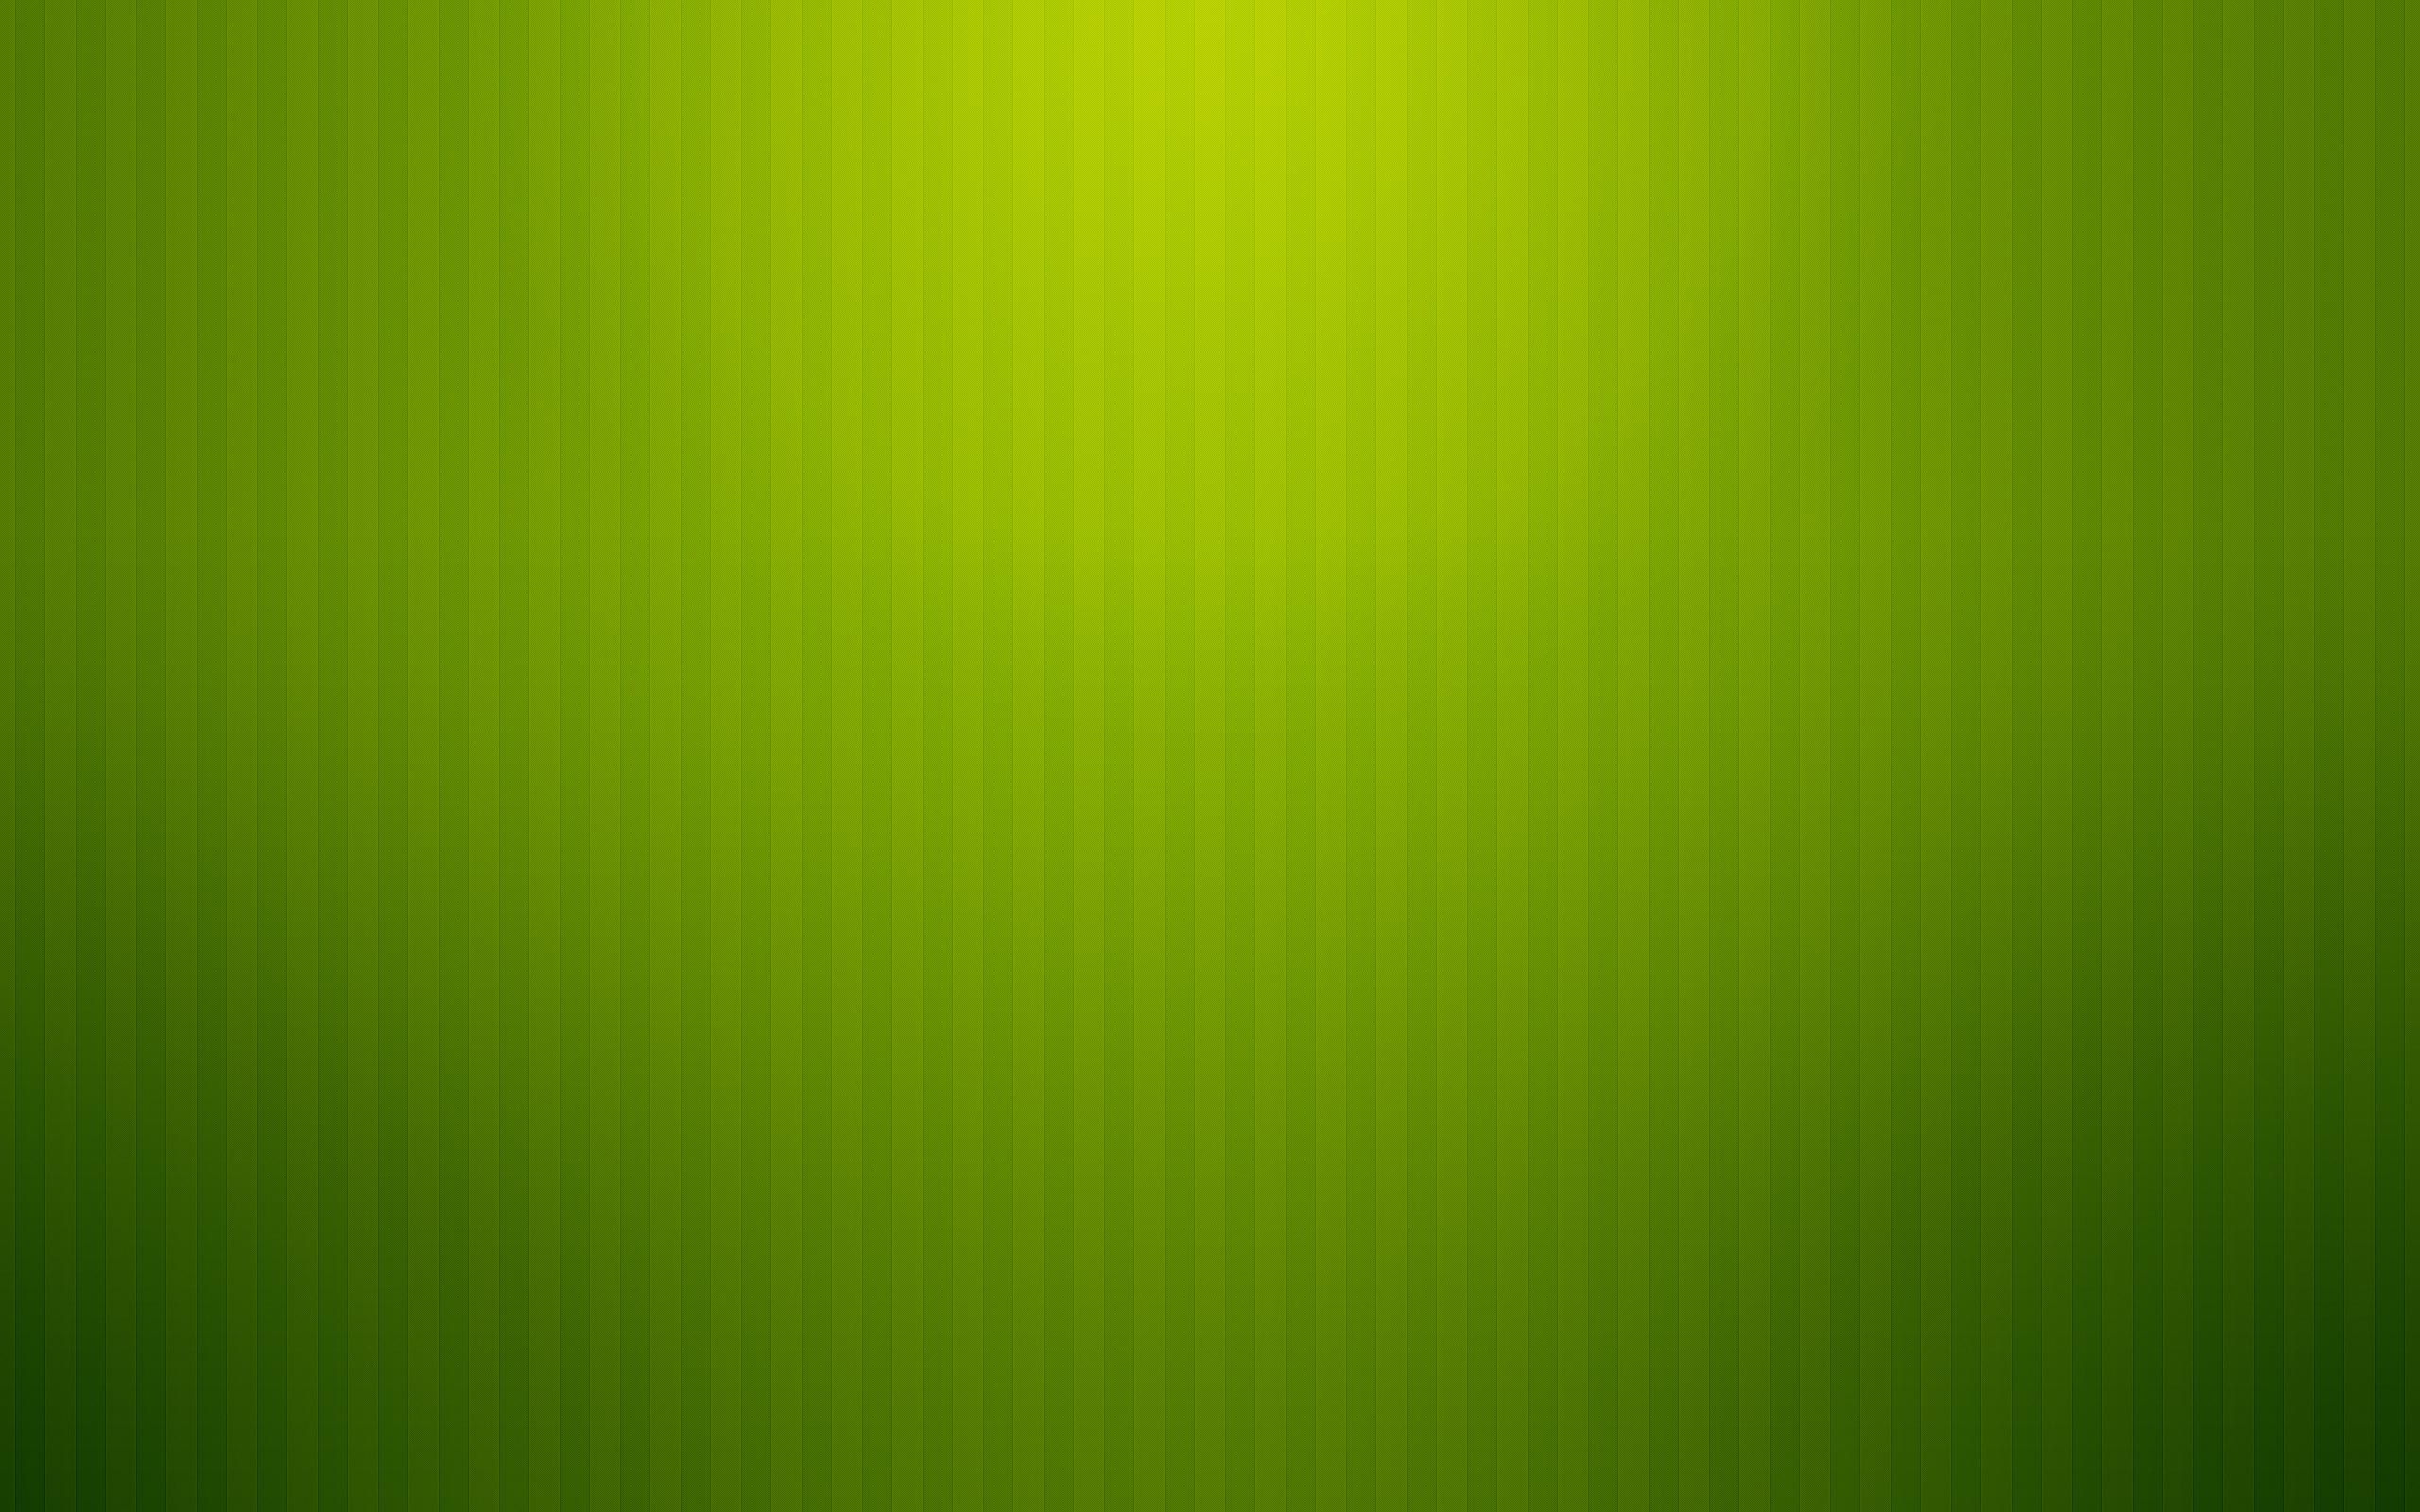 Plain Backgrounds